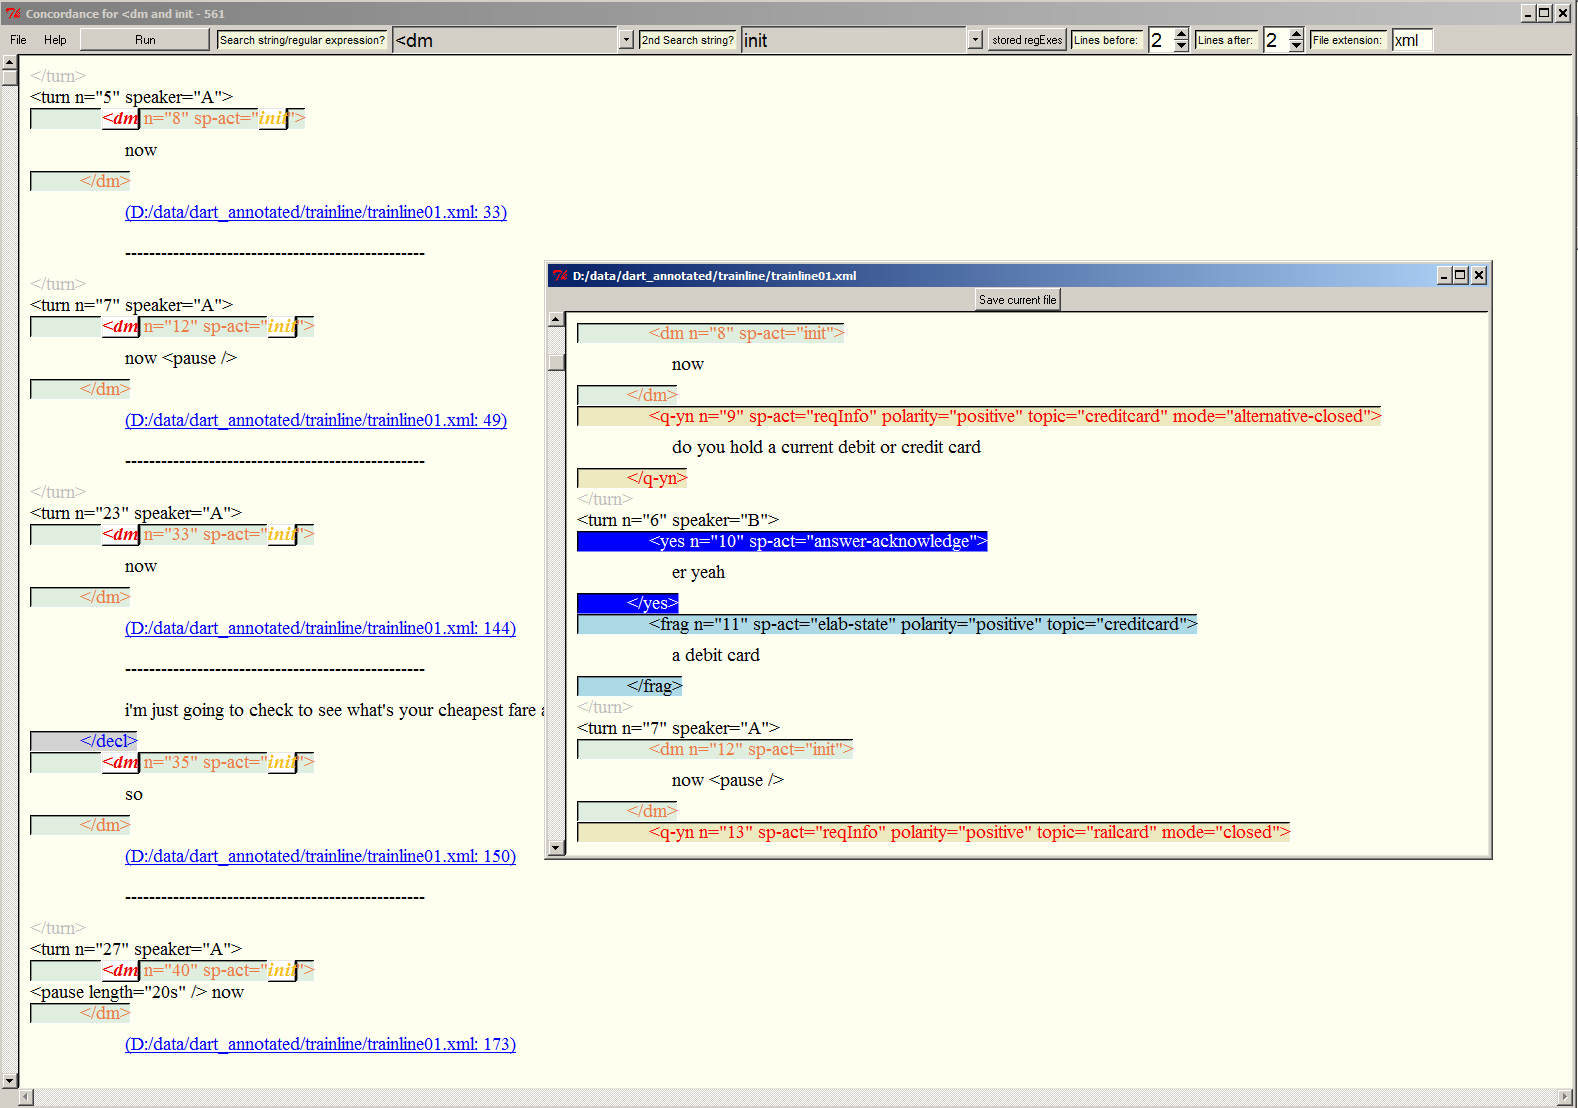 The Text Feature Analyser